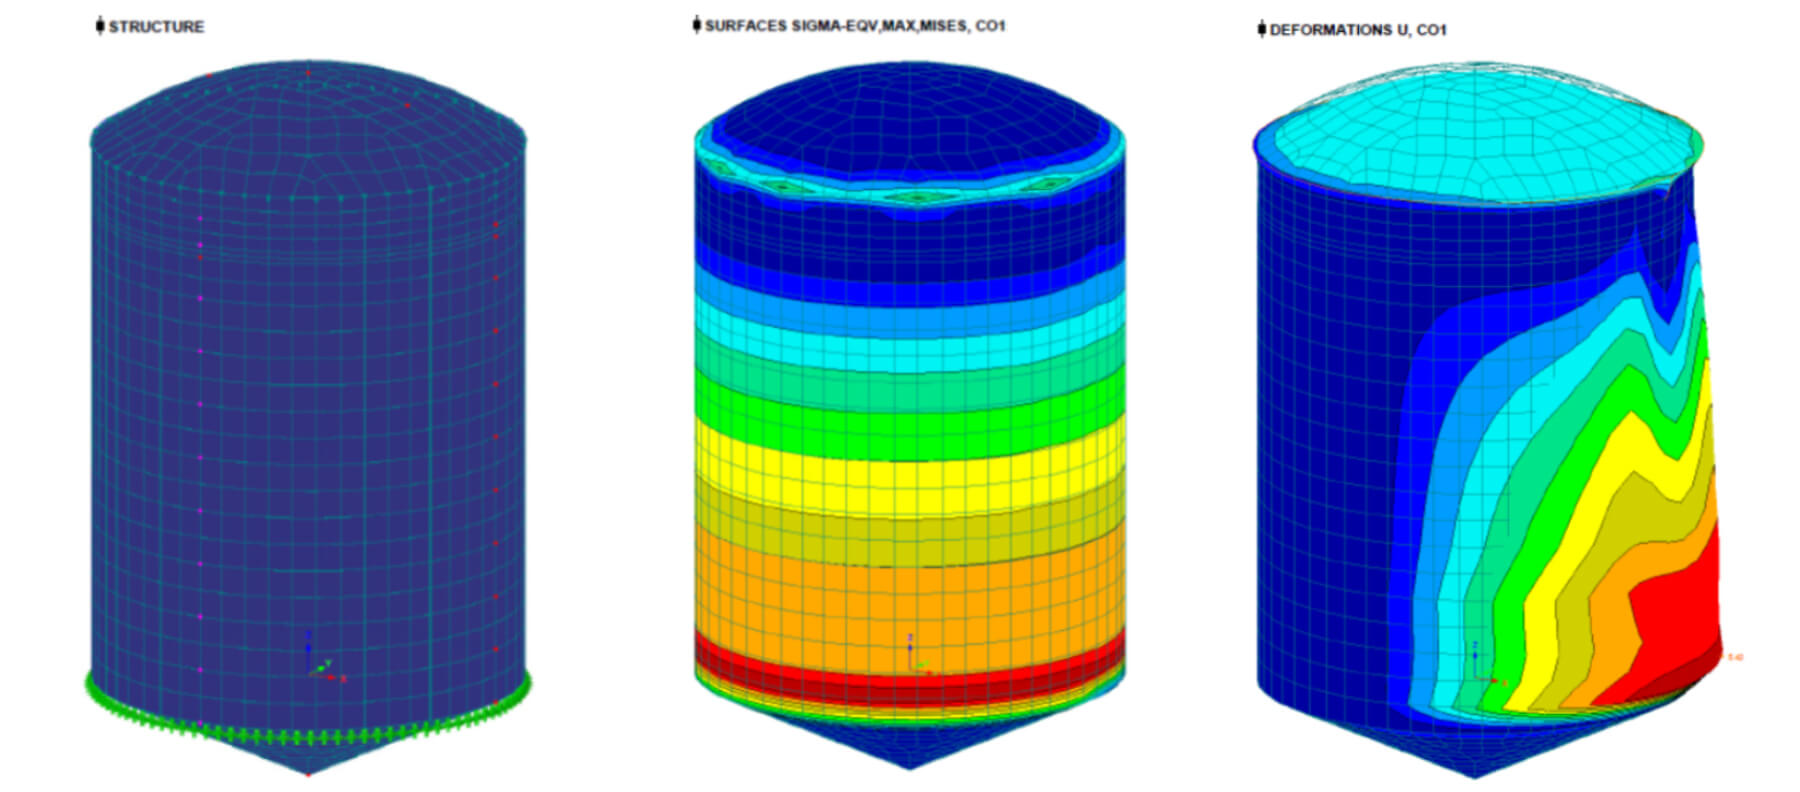 Fermenter Structural Analysis